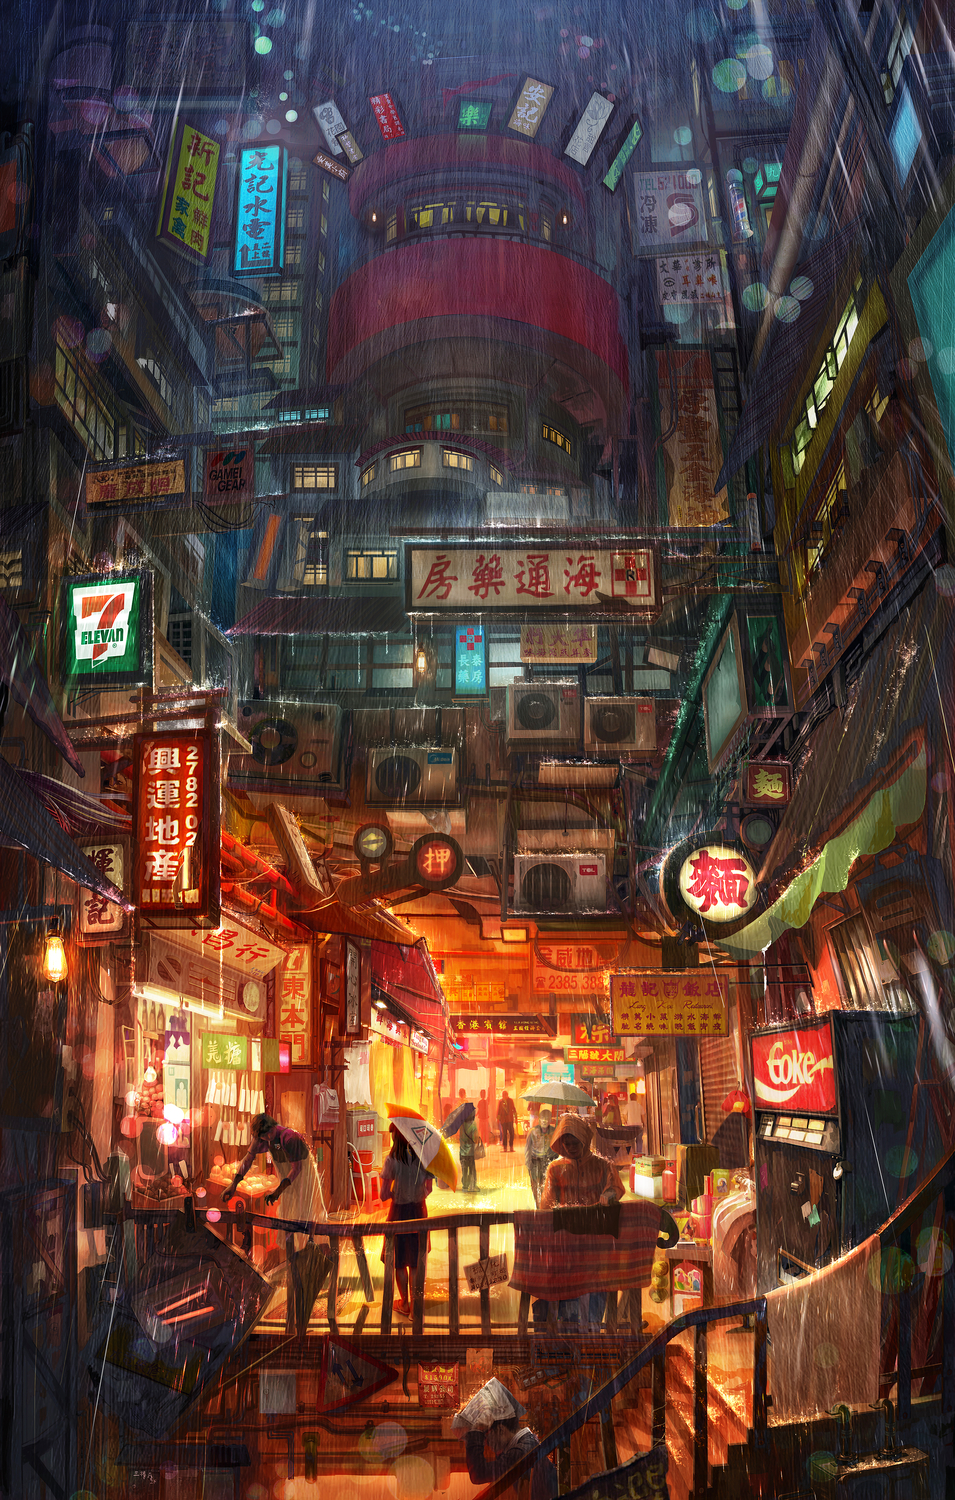 The Light of Sci Fi Kowloon City Artwork by Au-Yeung Chun Hay